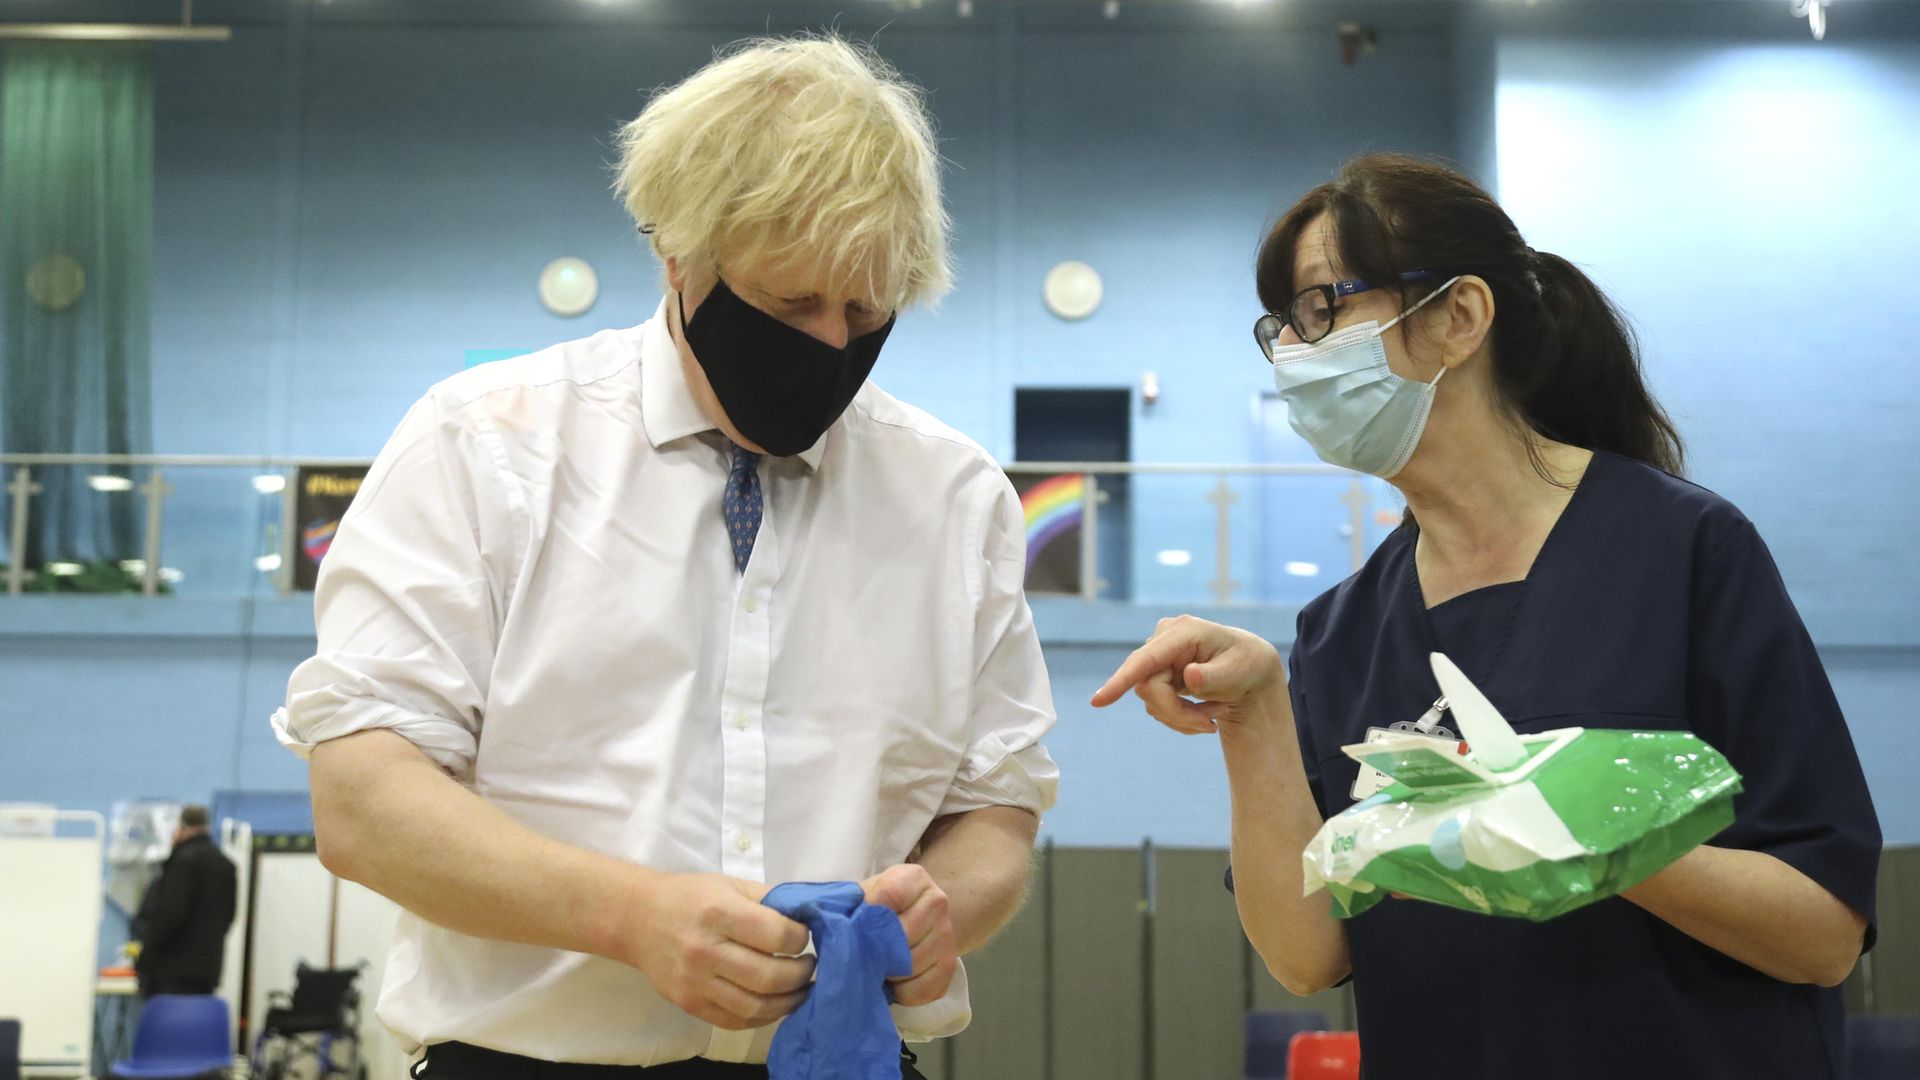 Prime minister Boris Johnson speaks with health worker Wendy Warren as he puts on a pair of medical gloves during a visit to a vaccination centre at Cwmbran Stadium in Cwmbran, south Wales - Credit: PA